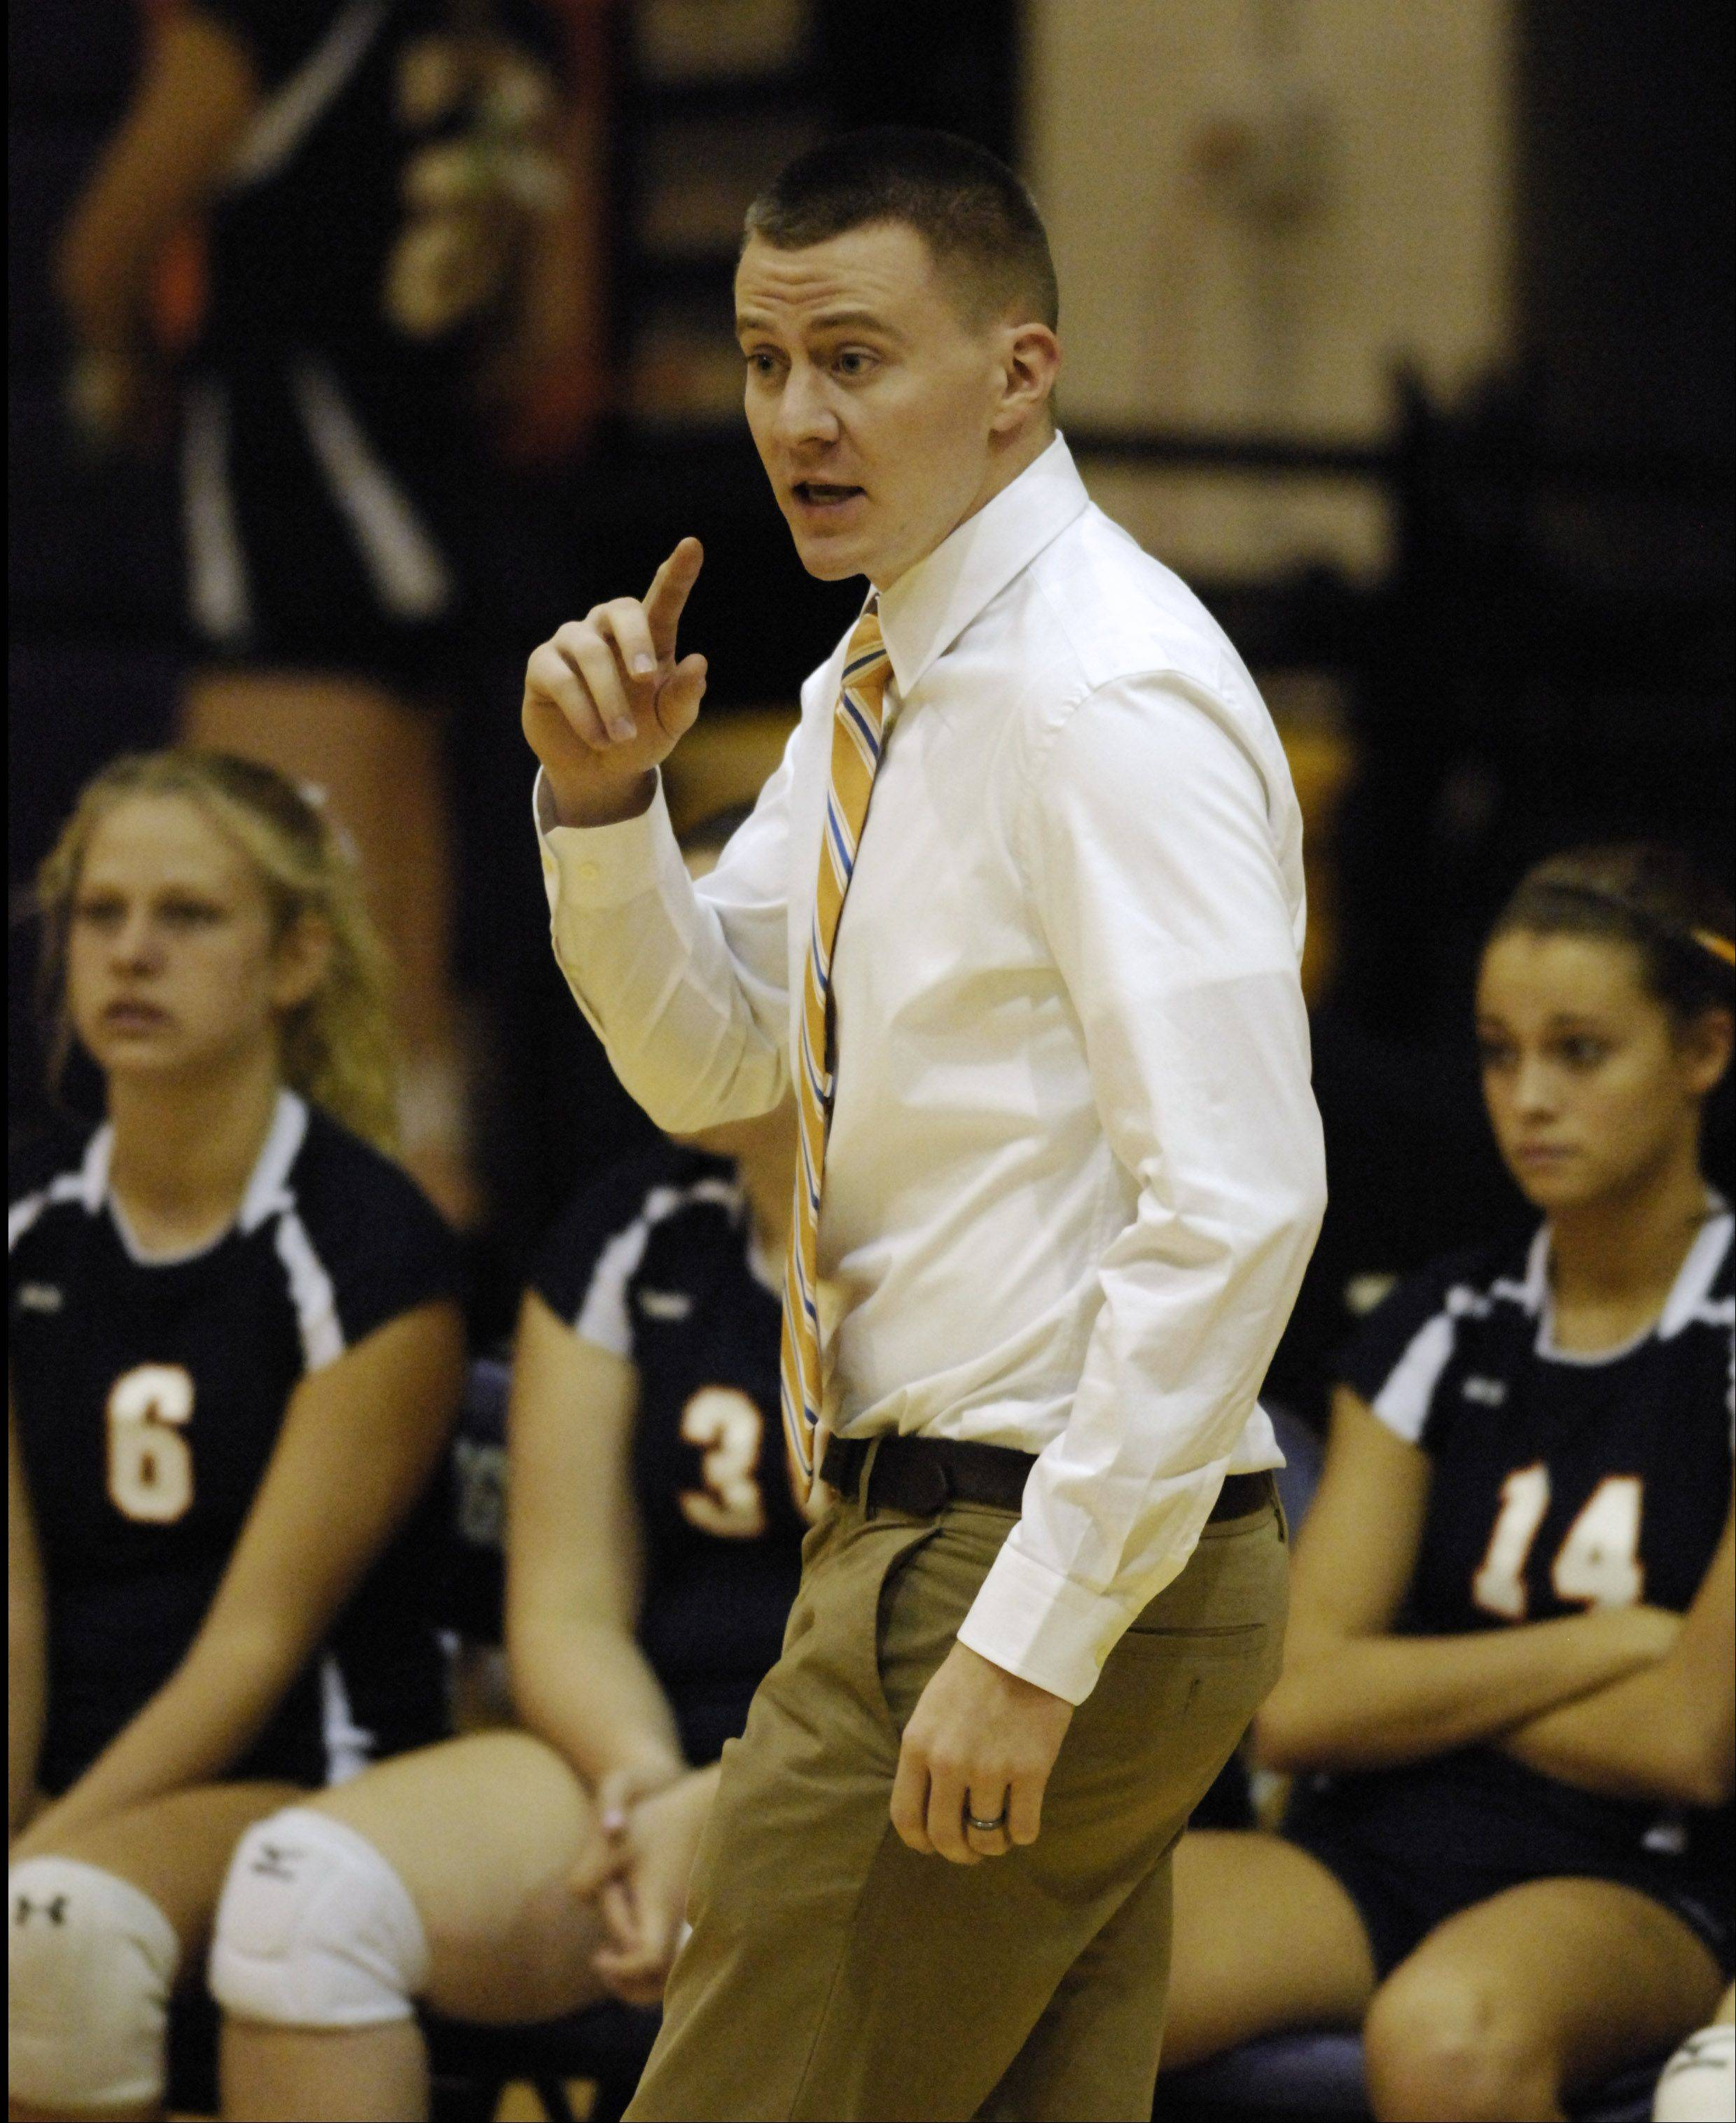 Buffalo Grove girls volleyball coach Matt Priban leads his team during Thursday's game against Rolling Meadows.